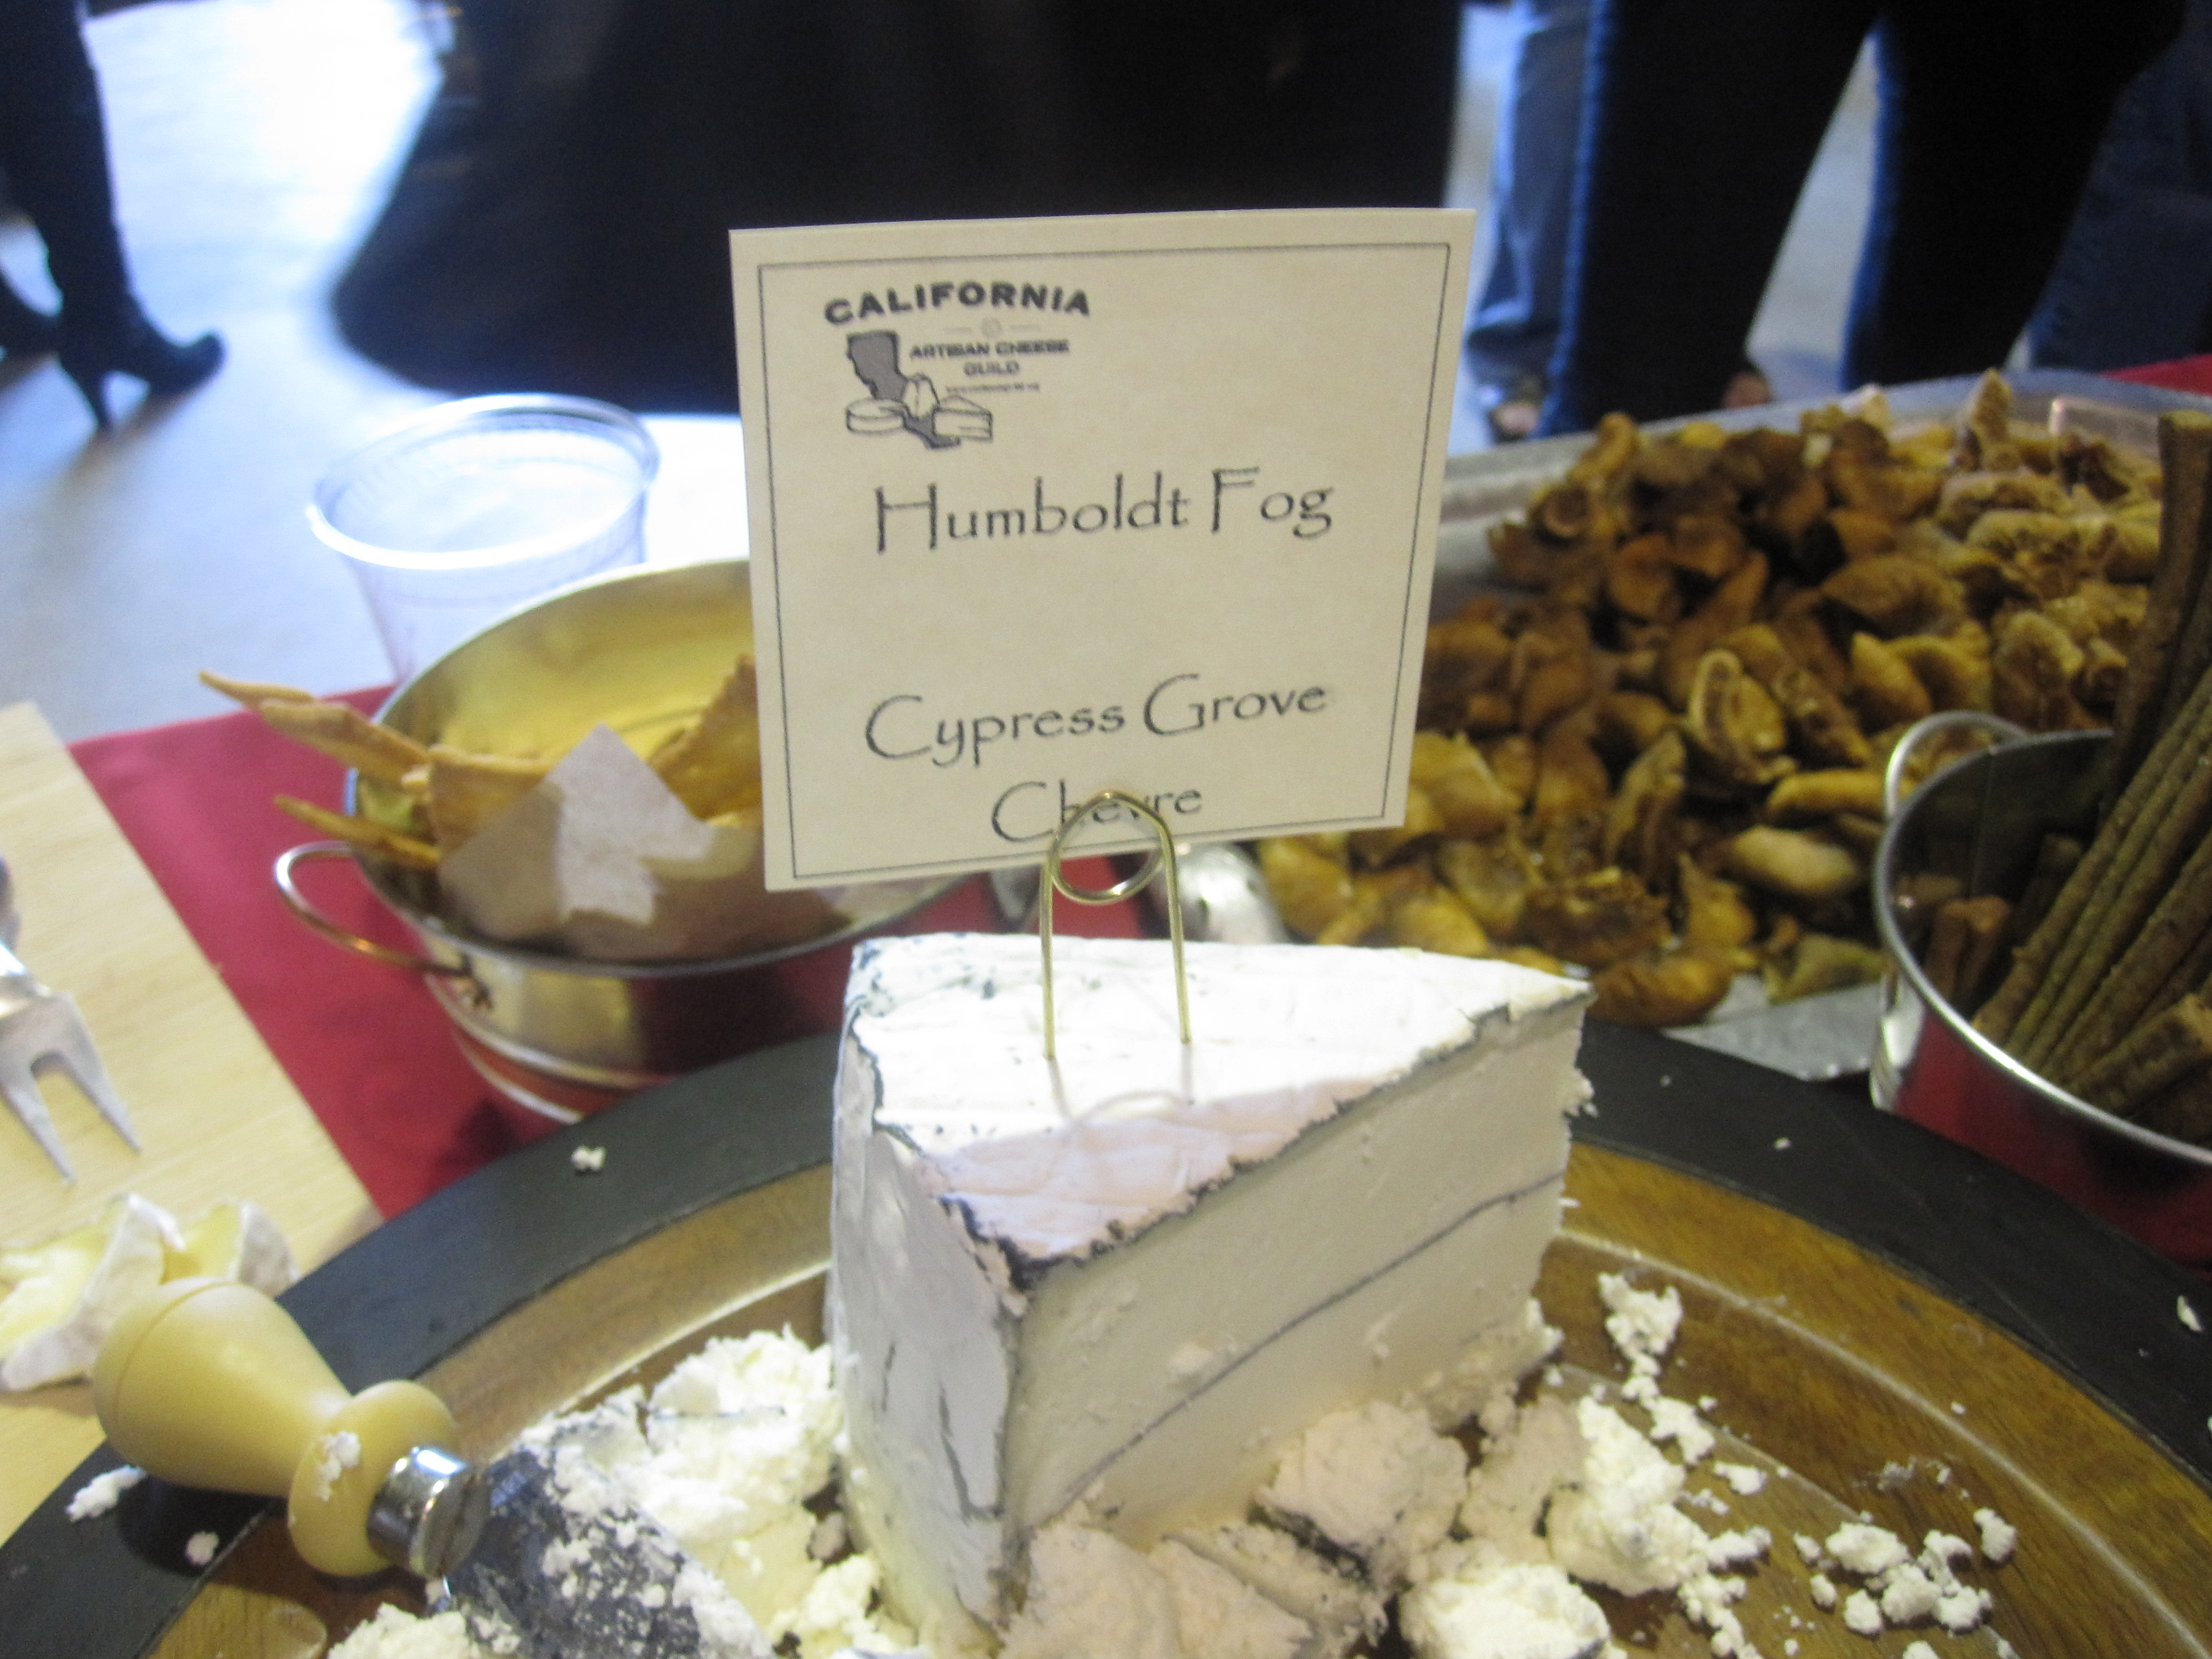 Humboldt Fog is always a crowd-pleasing goat cheese.